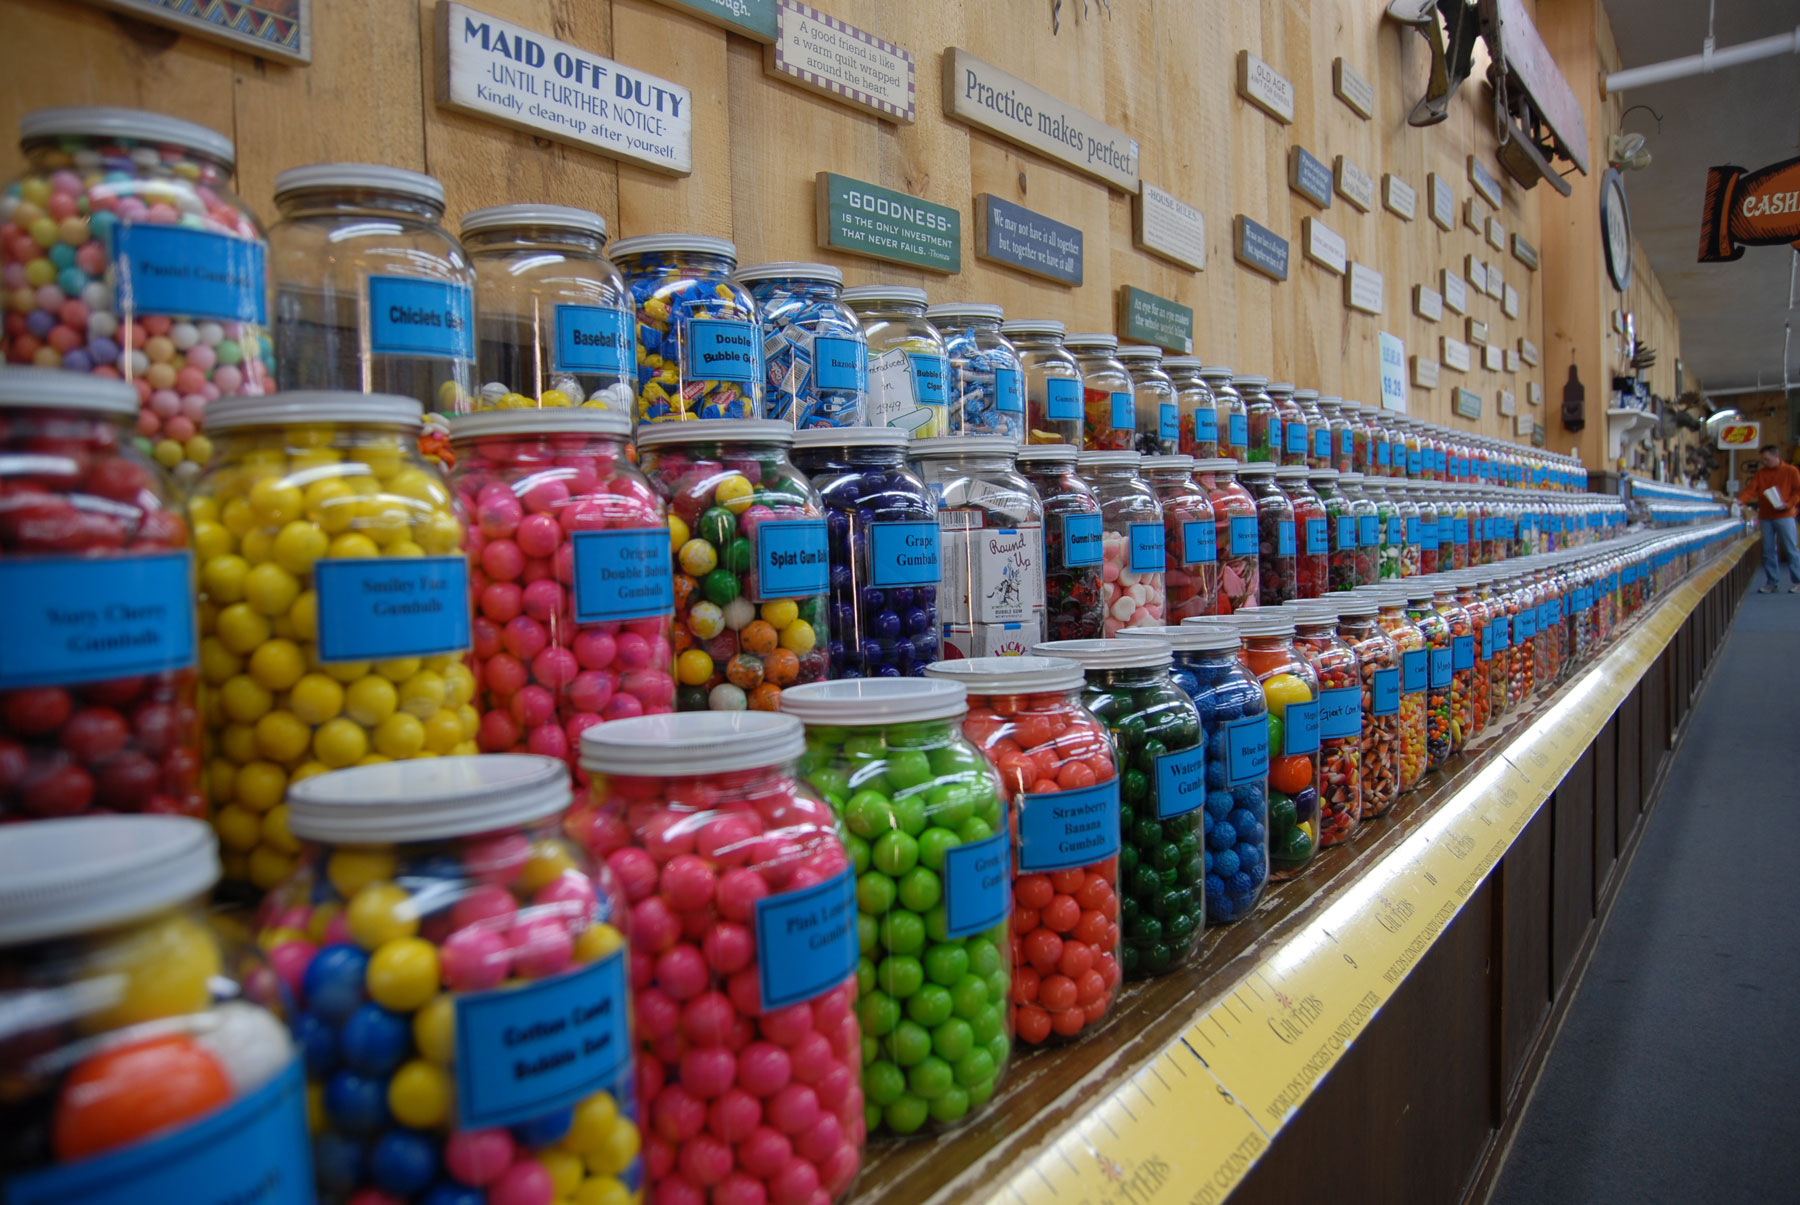 world's longest candy jar counter